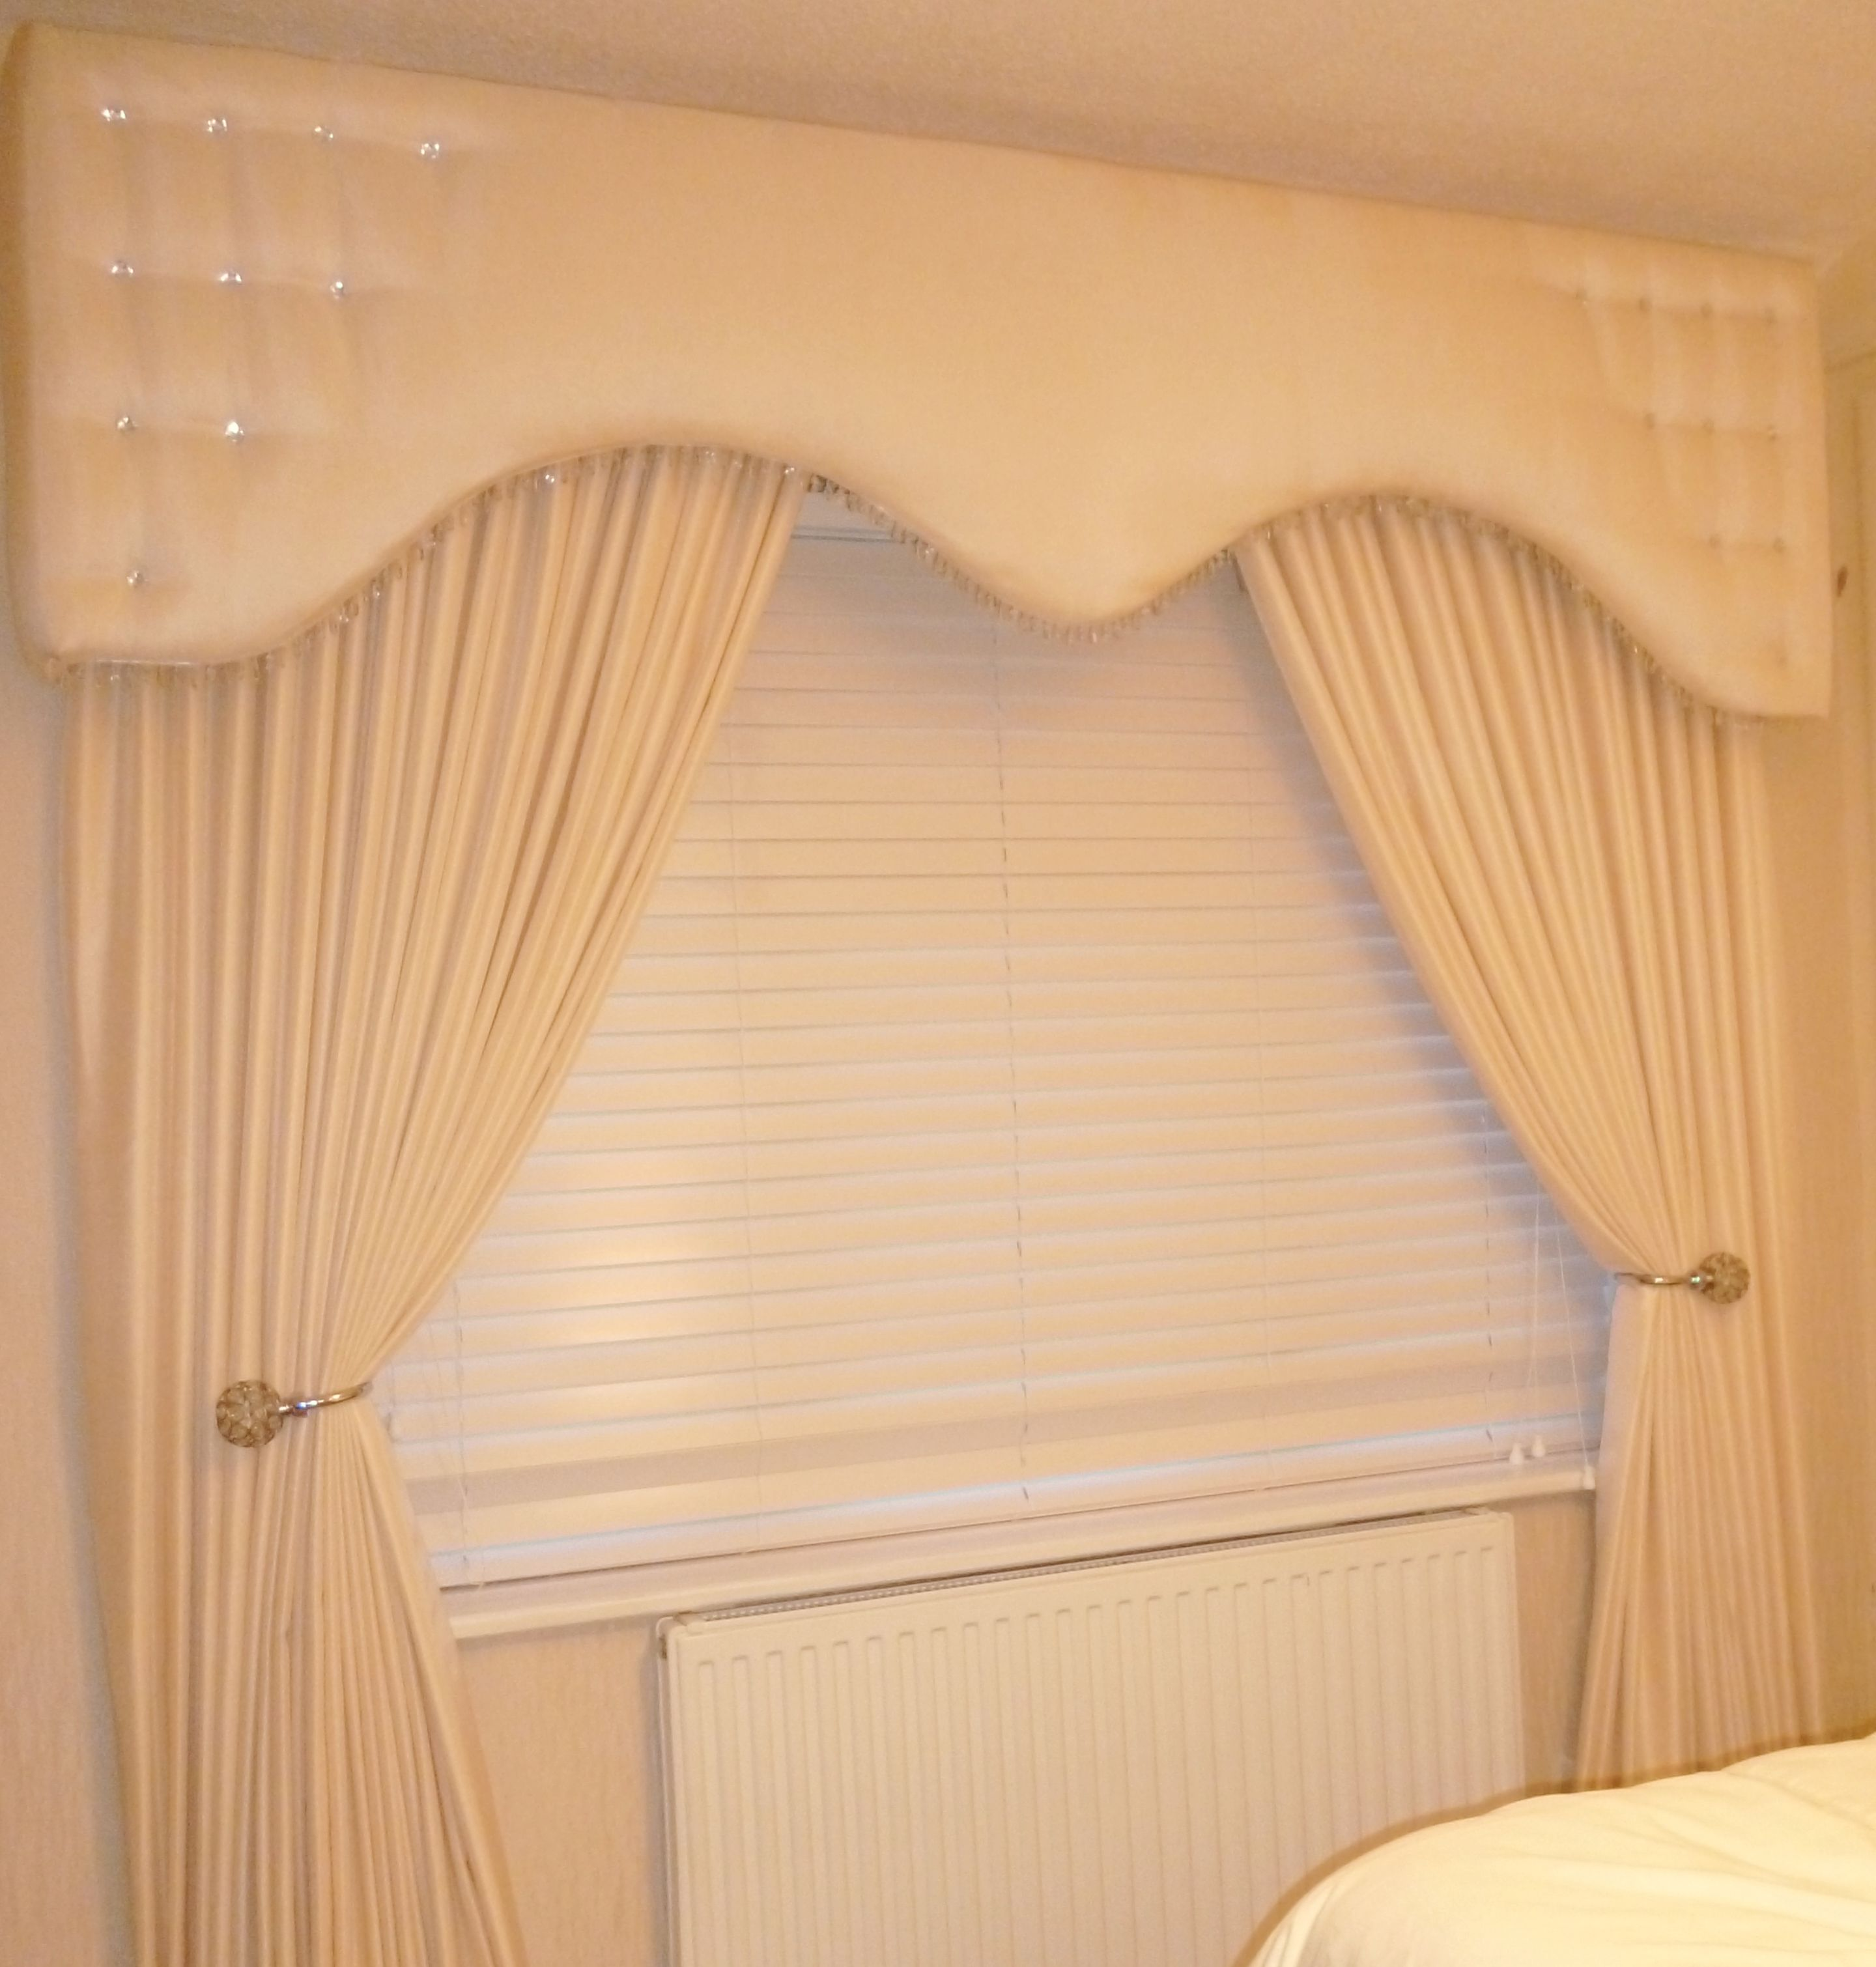 Curtain Pelmets Ideas: Pelmet And Curtains Cream Shaped Style. Www